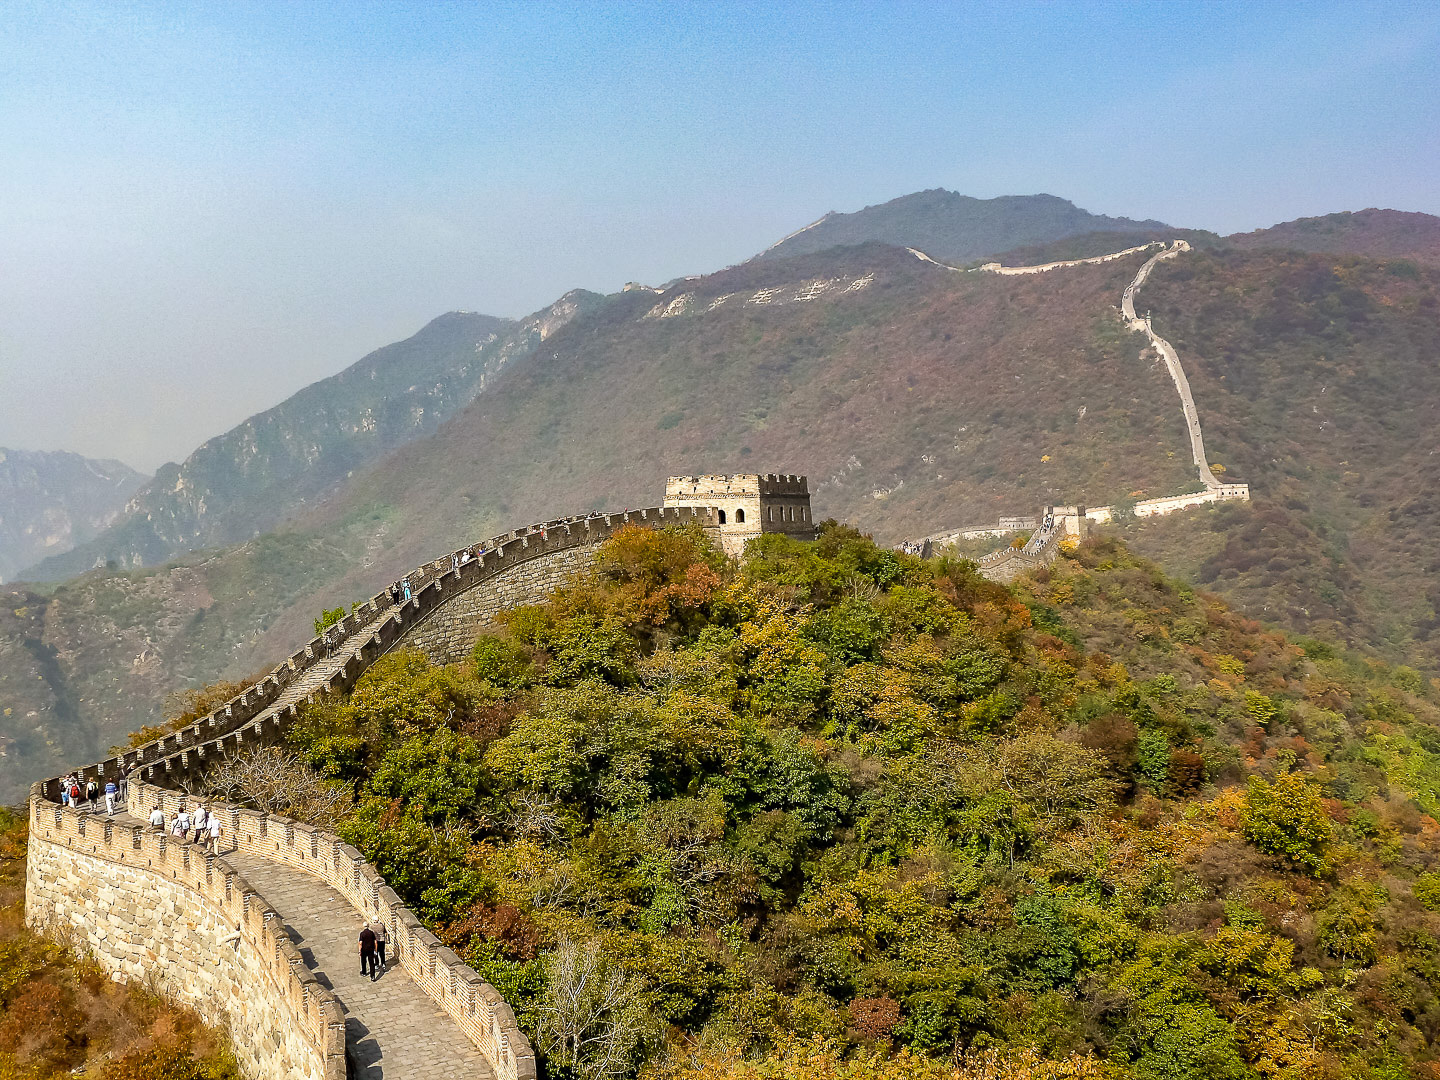 Barbara Stephen – The Great Wall at Mutianyu – 2ND